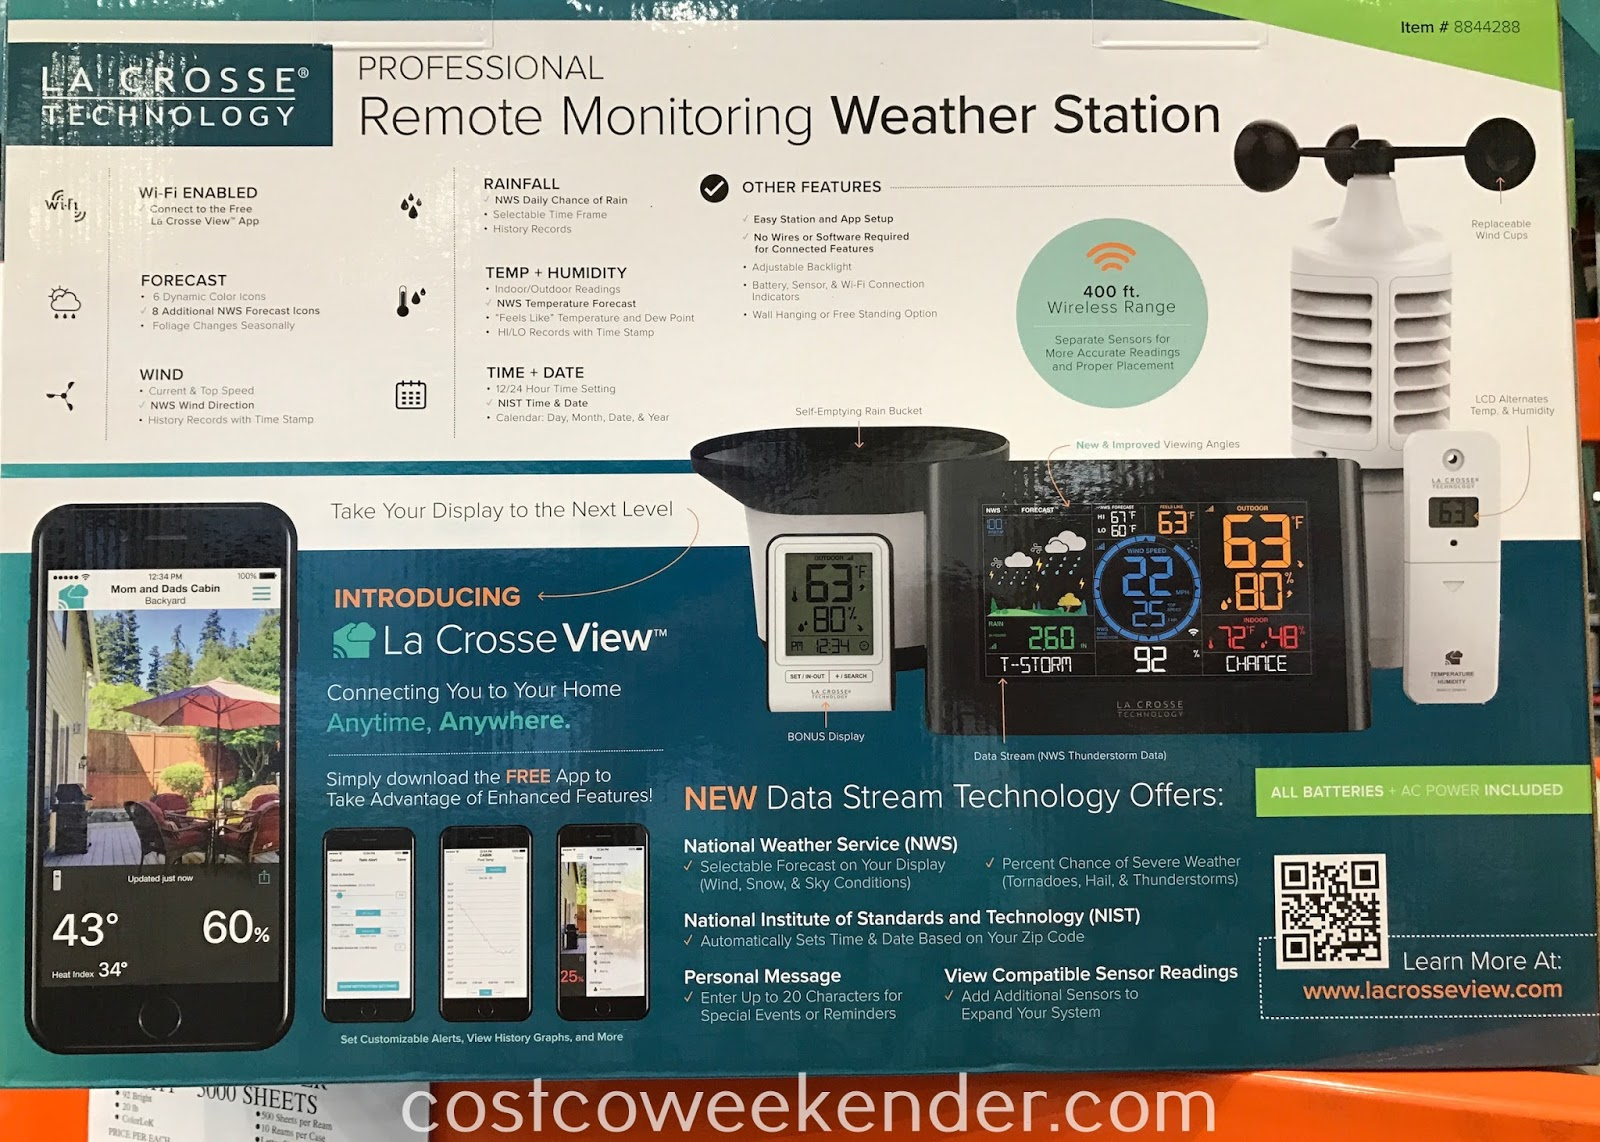 Costco 8844288 - La Crosse Professional Remote Monitoring Weather Station: more accurate than online resources